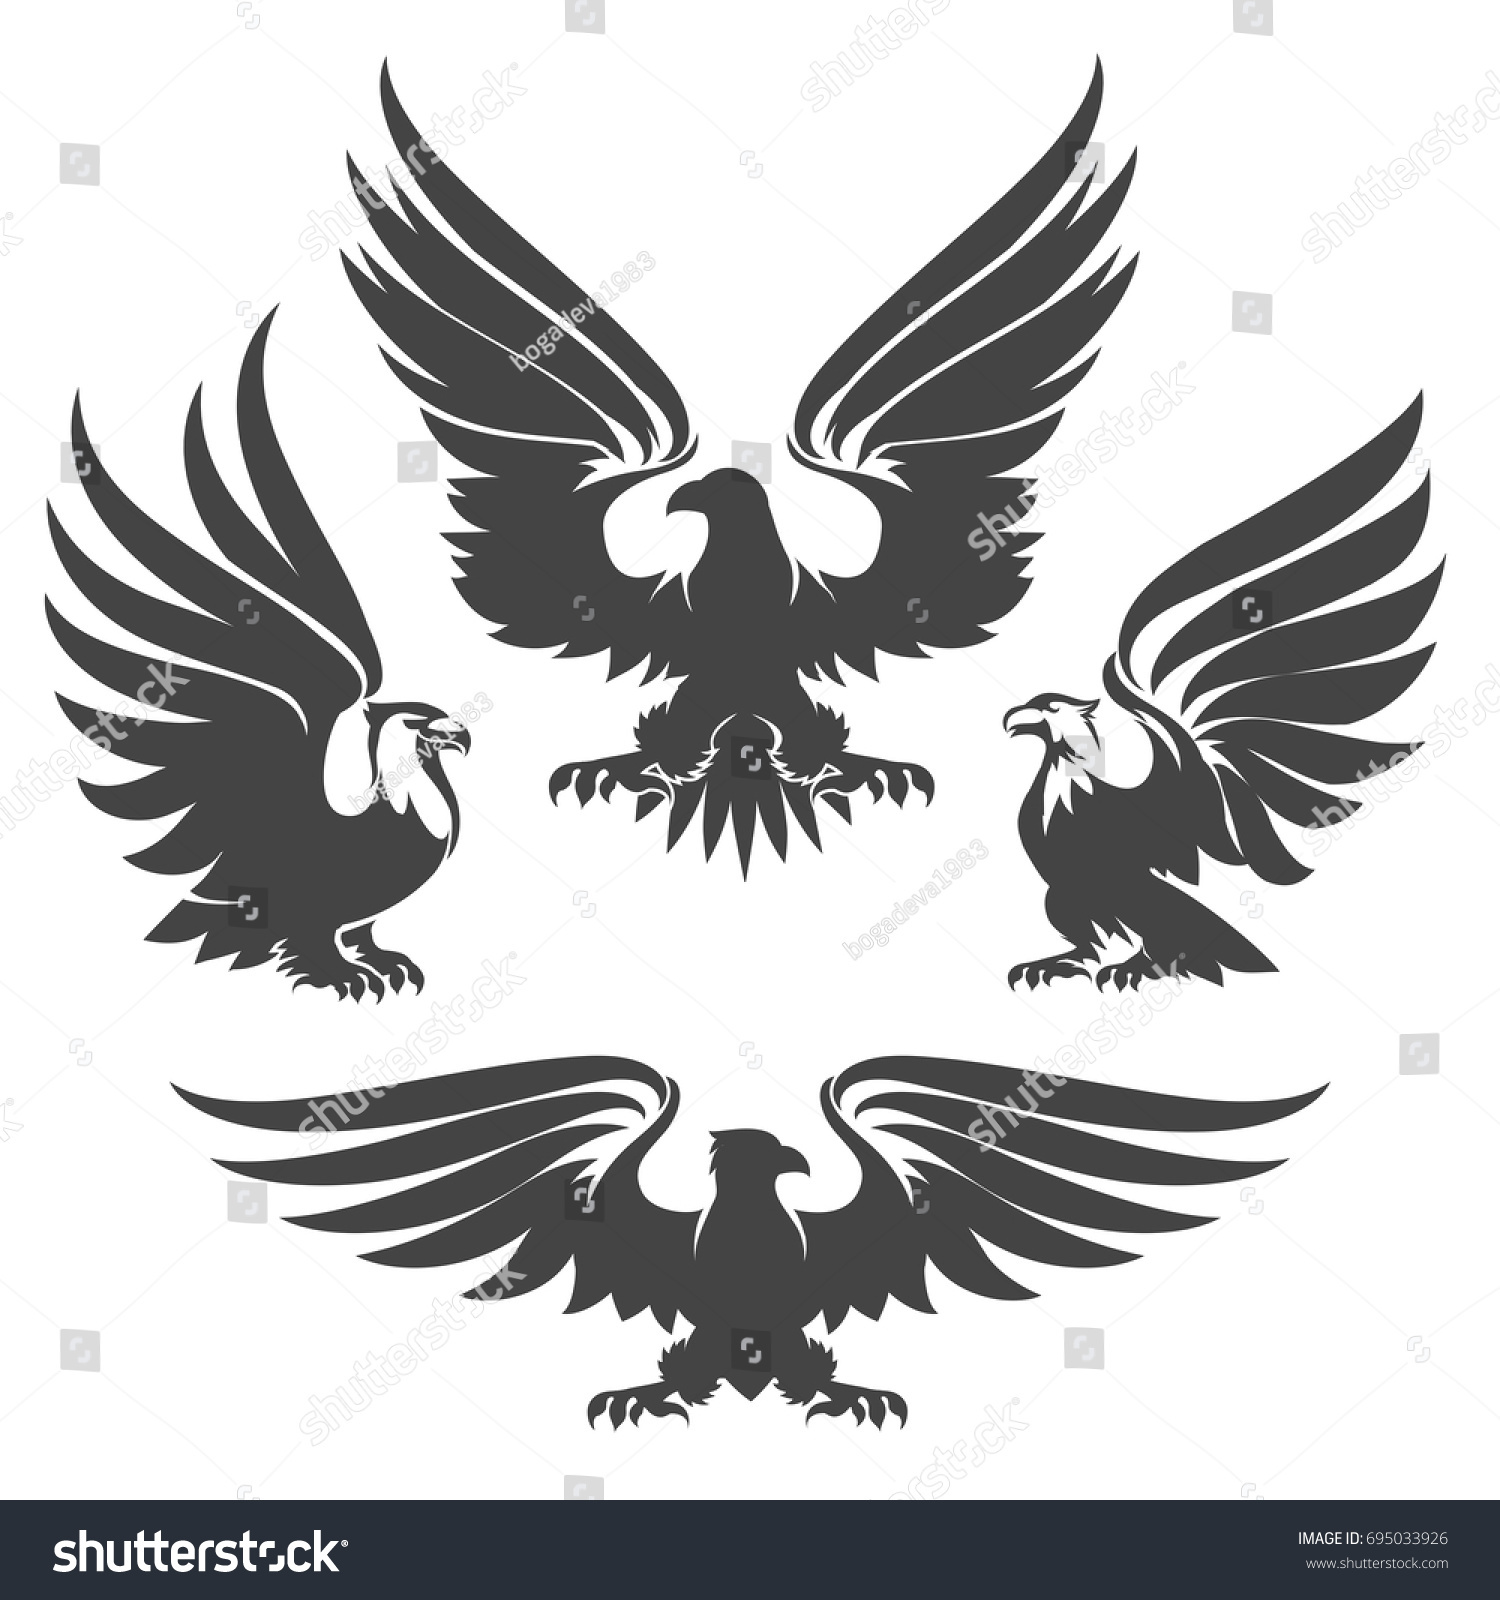 Native american eagle symbol tattoo images for tatouage native american eagle symbol tattoo for heraldry eagles hawks falcons drawn tattoo stock vector 695033926 buycottarizona